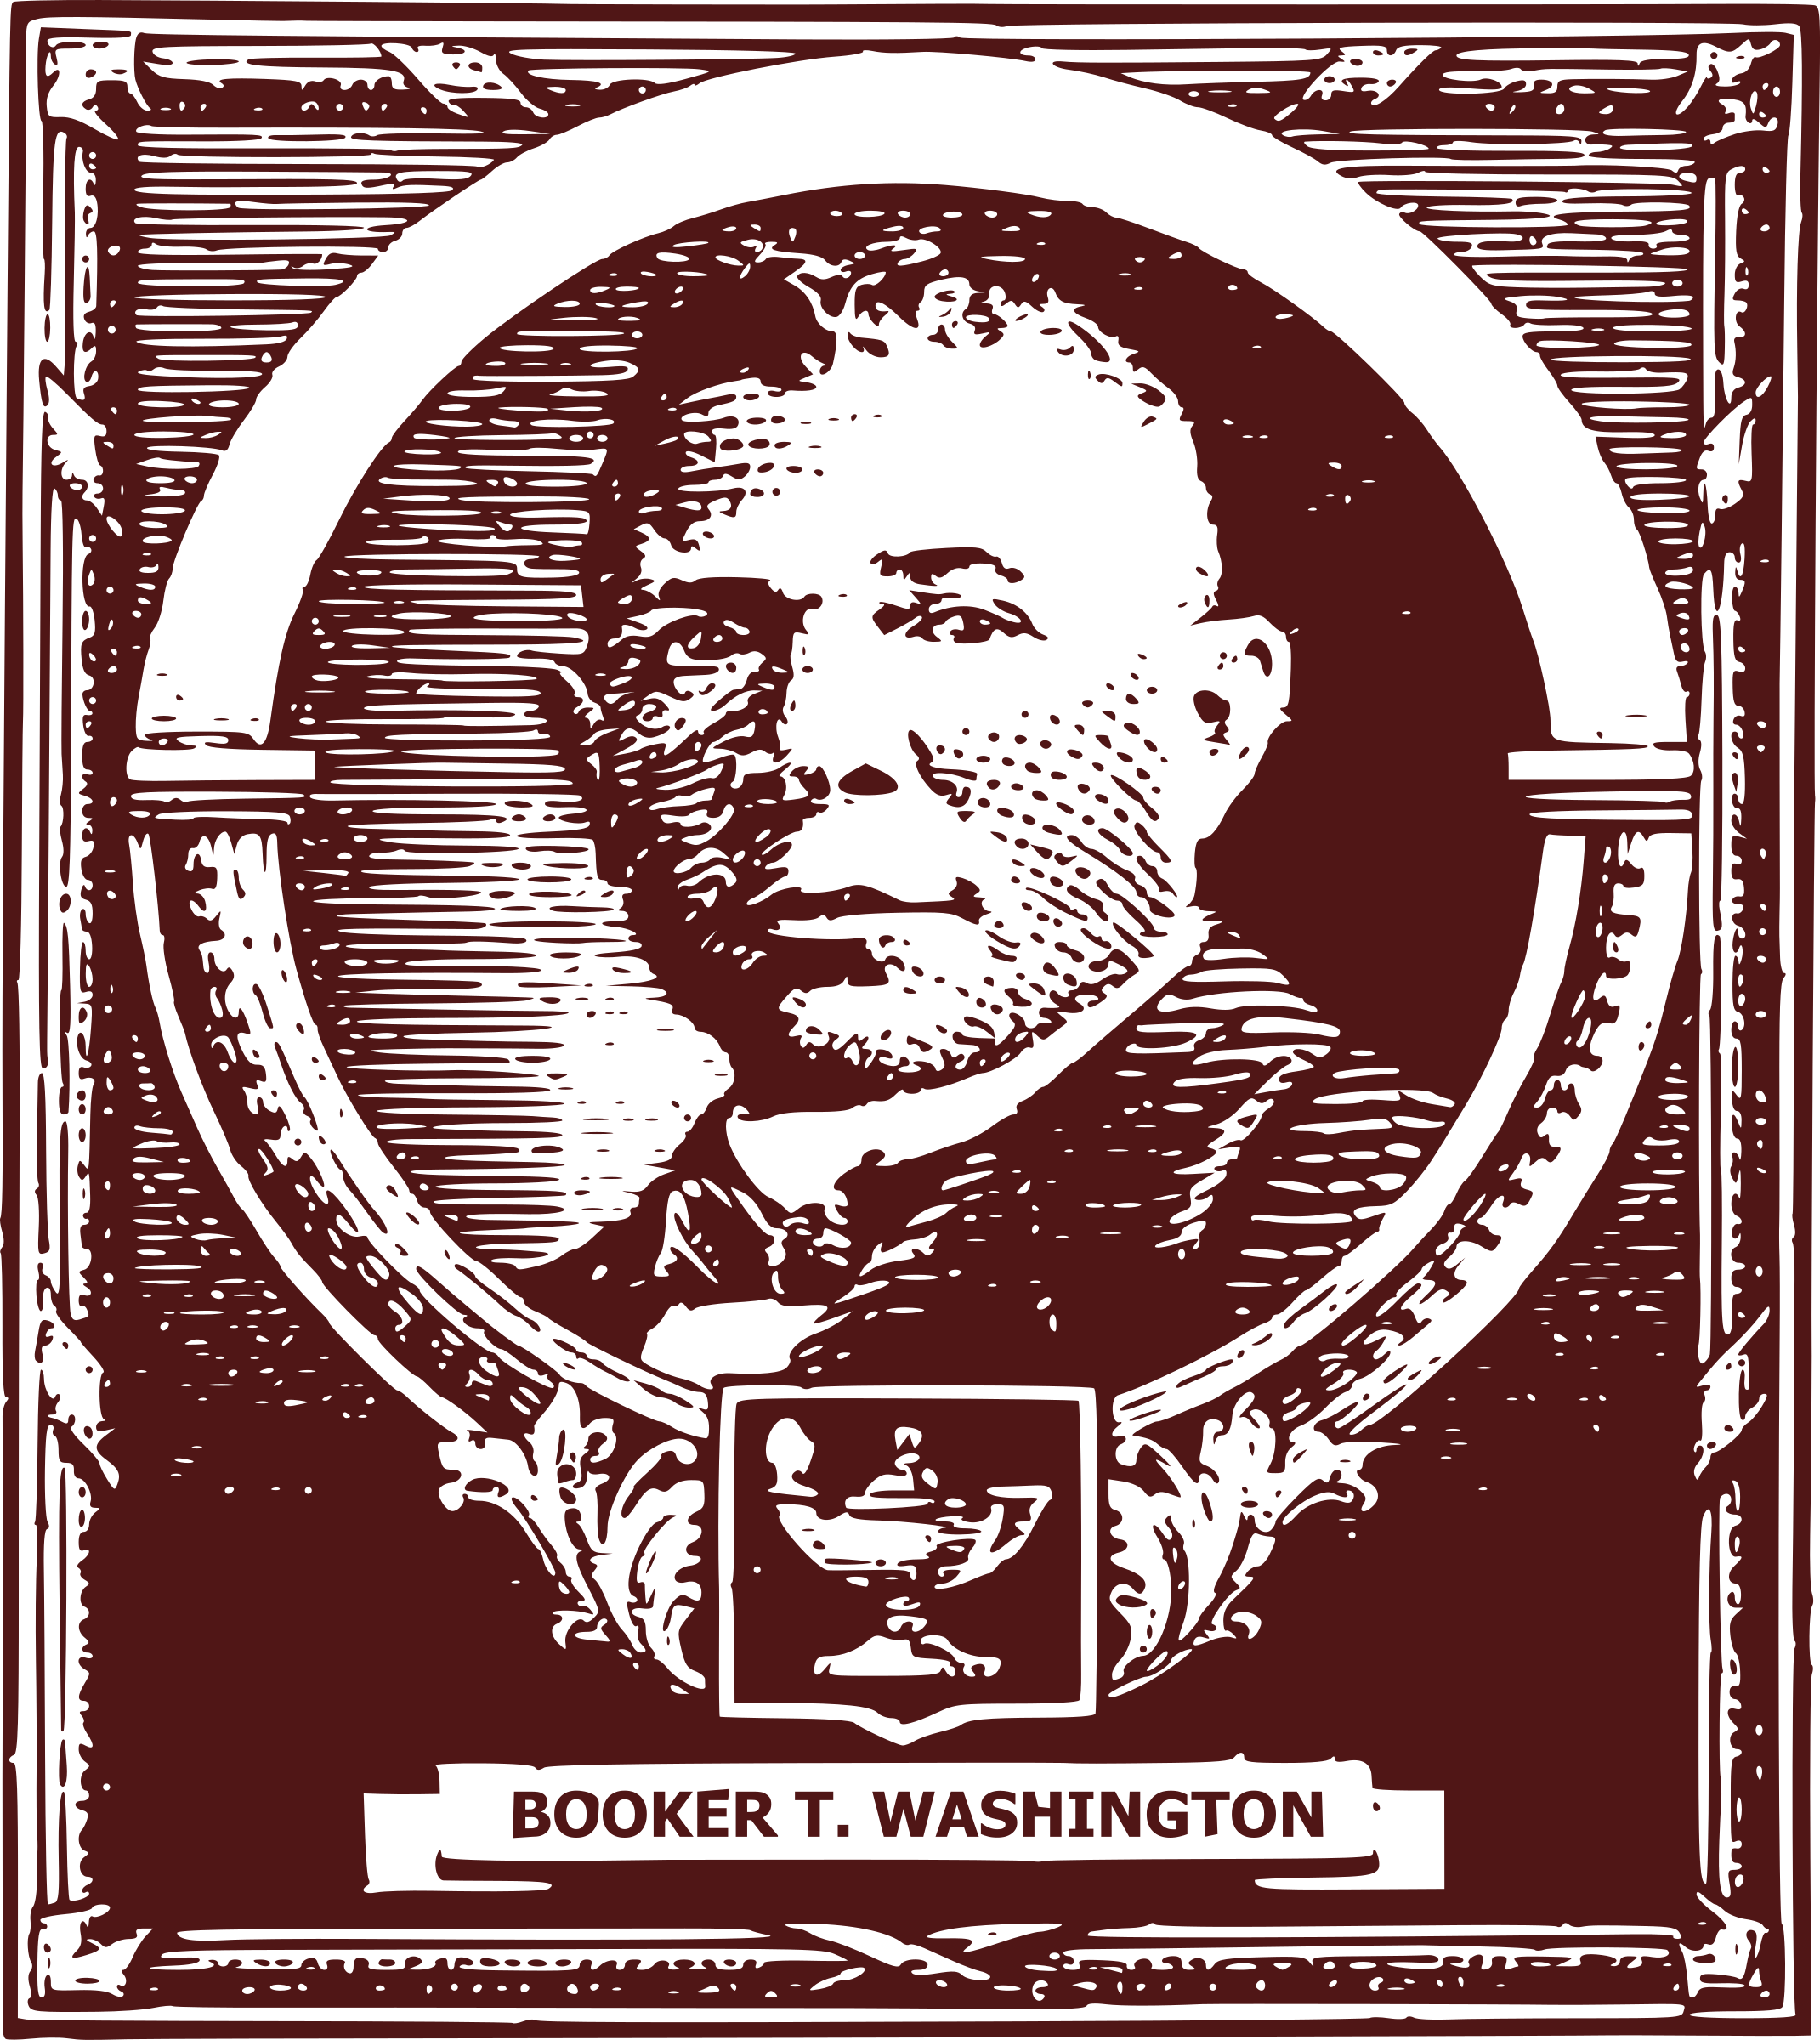 Booker T. Washington  by j4p4n